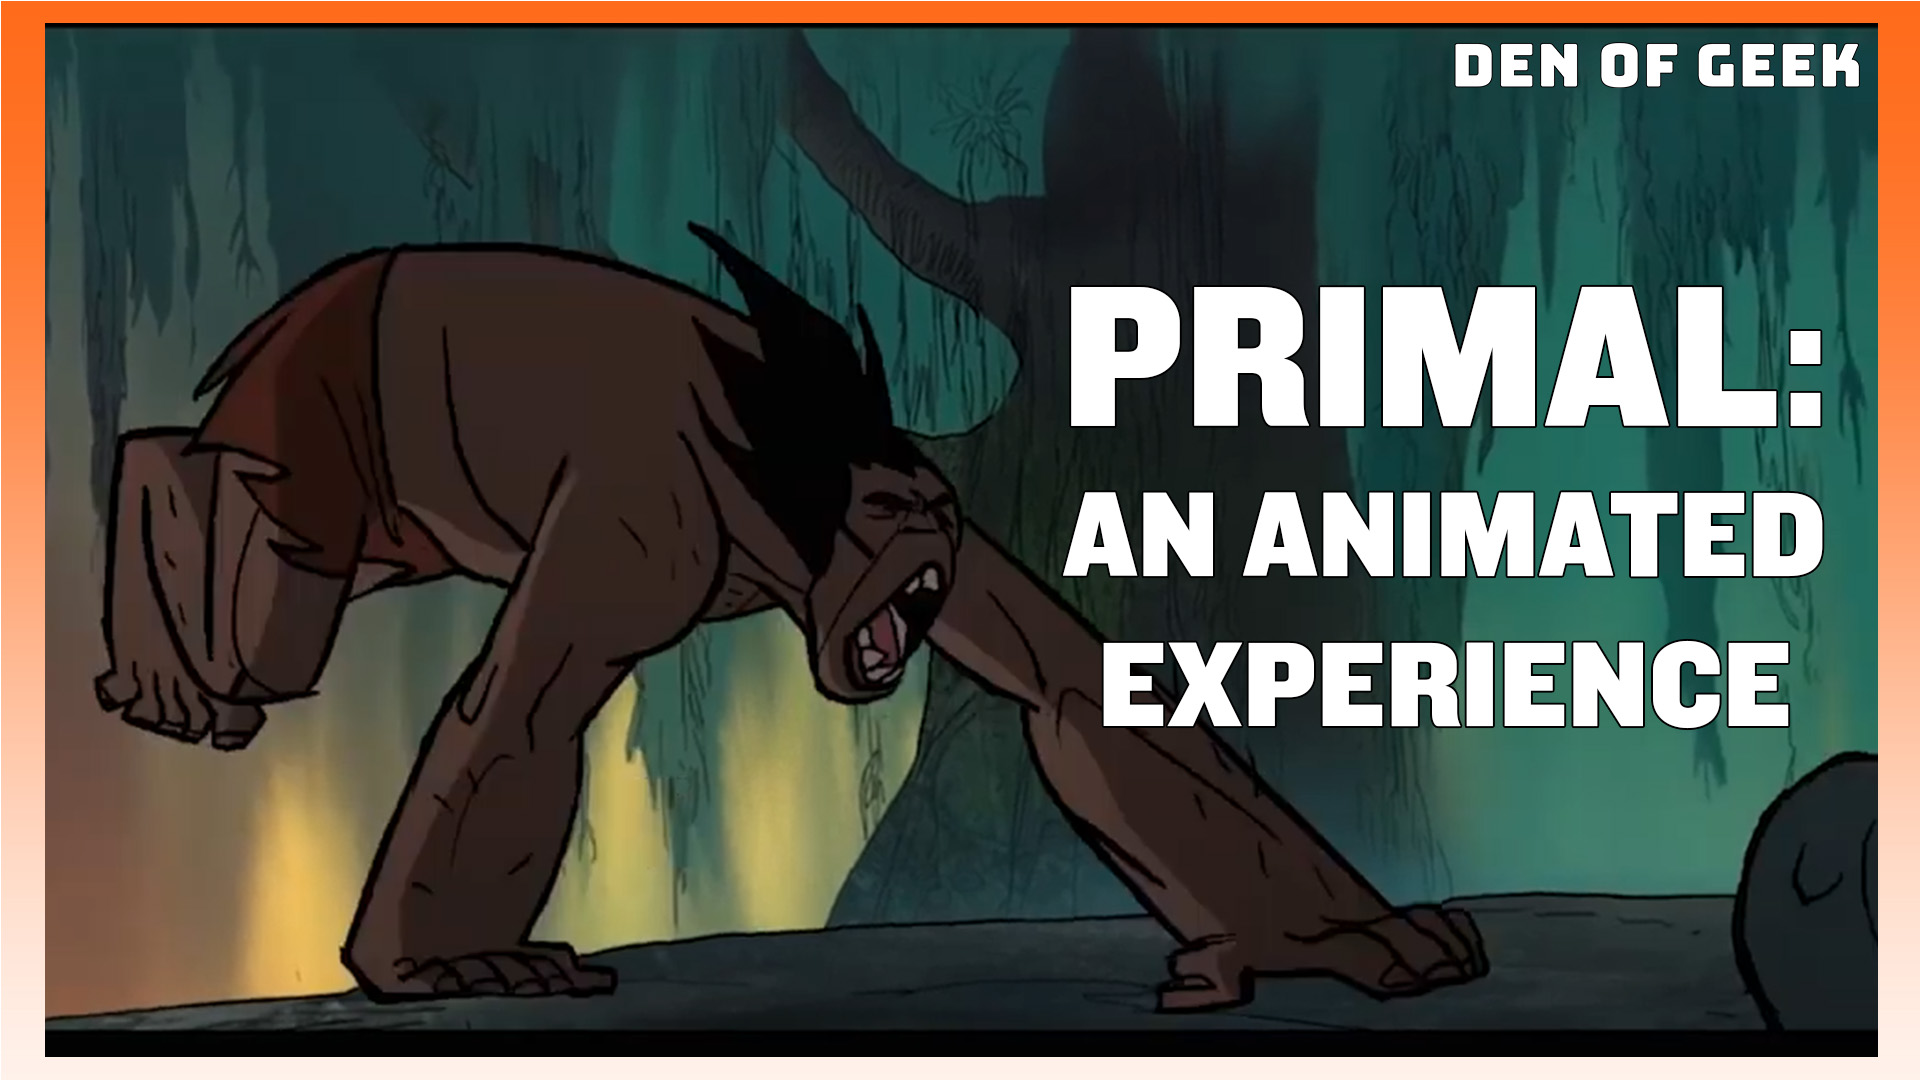 SDCC 2019: Genndy Tartakovsky (Primal) Interview